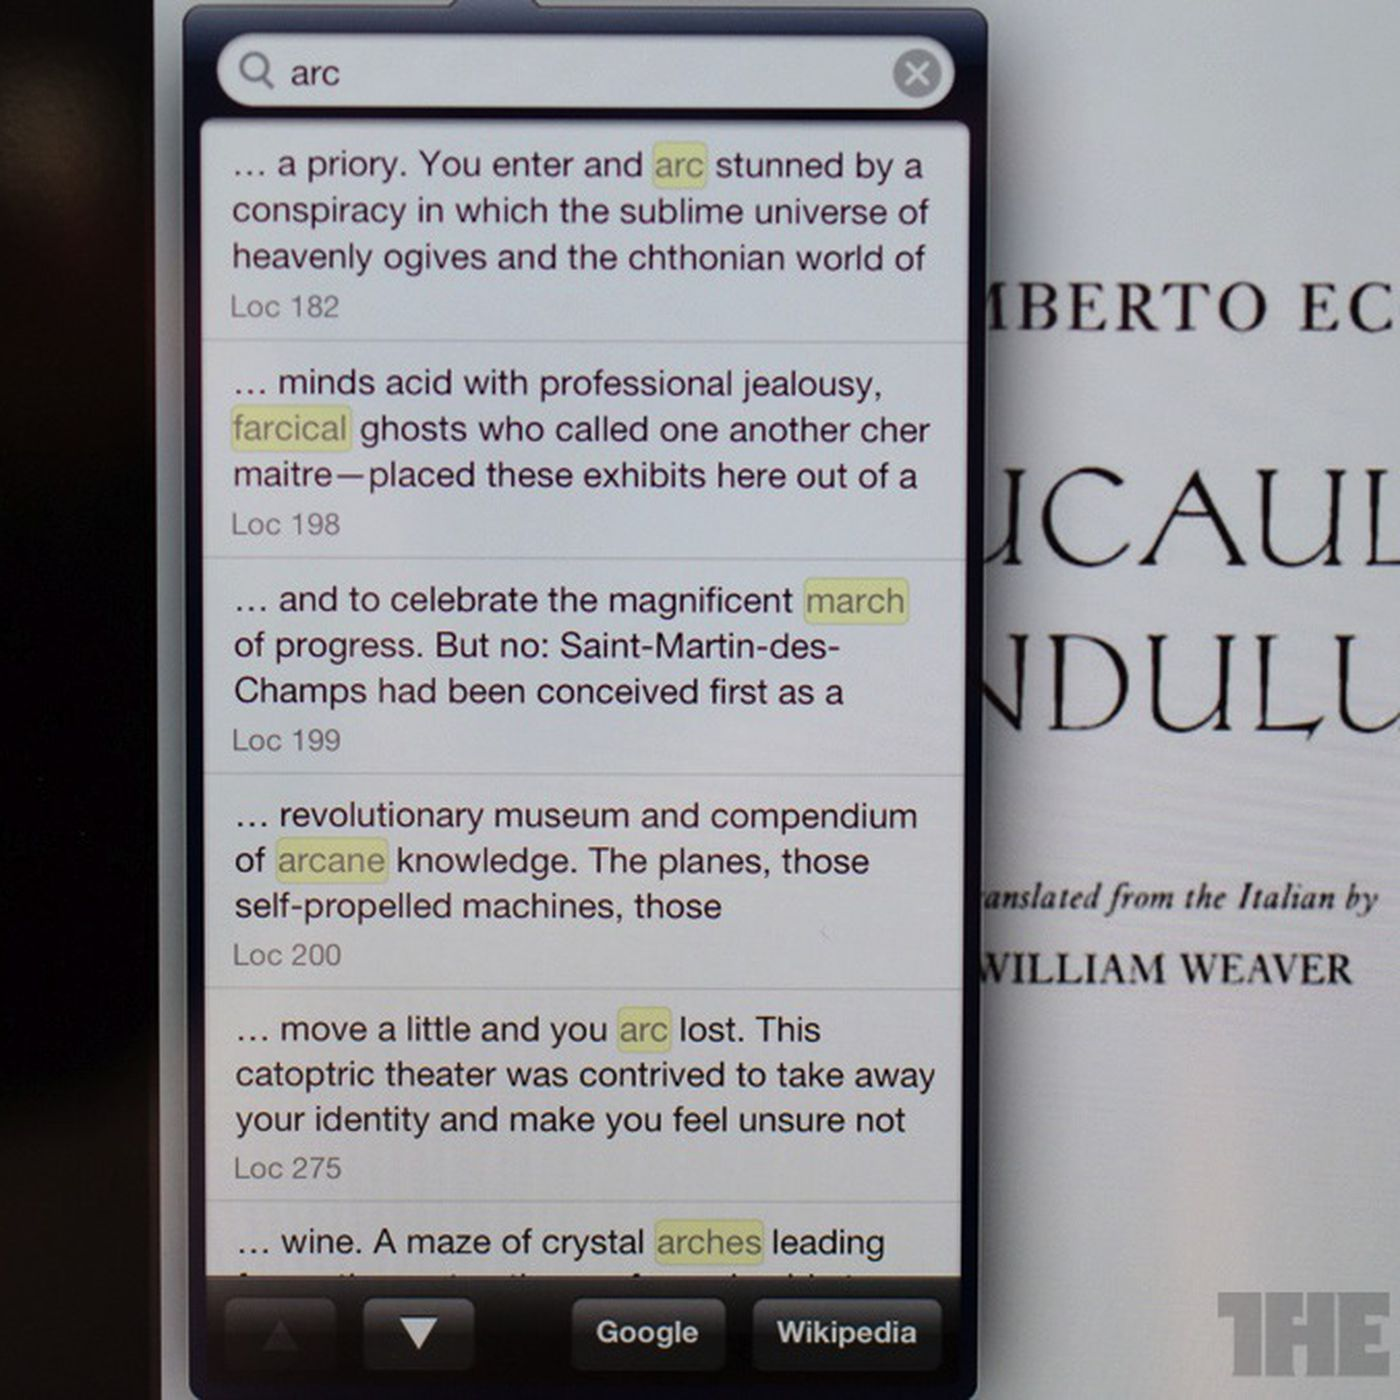 Why is an ebook ever riddled with typos? - The Verge